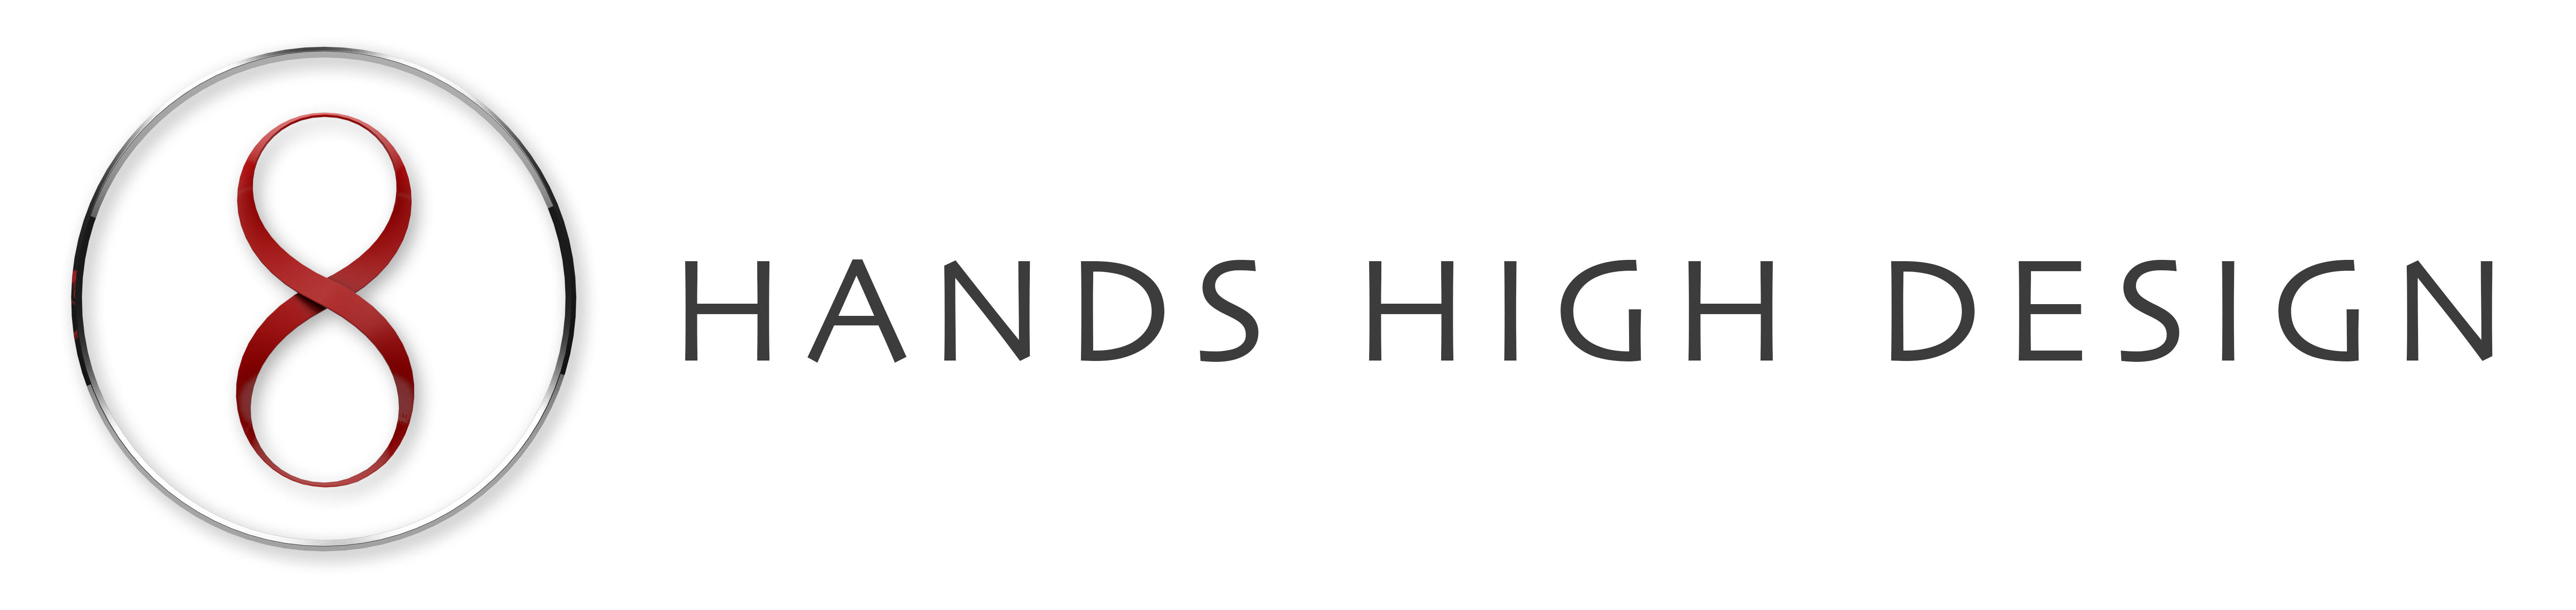 8 Hands High Design